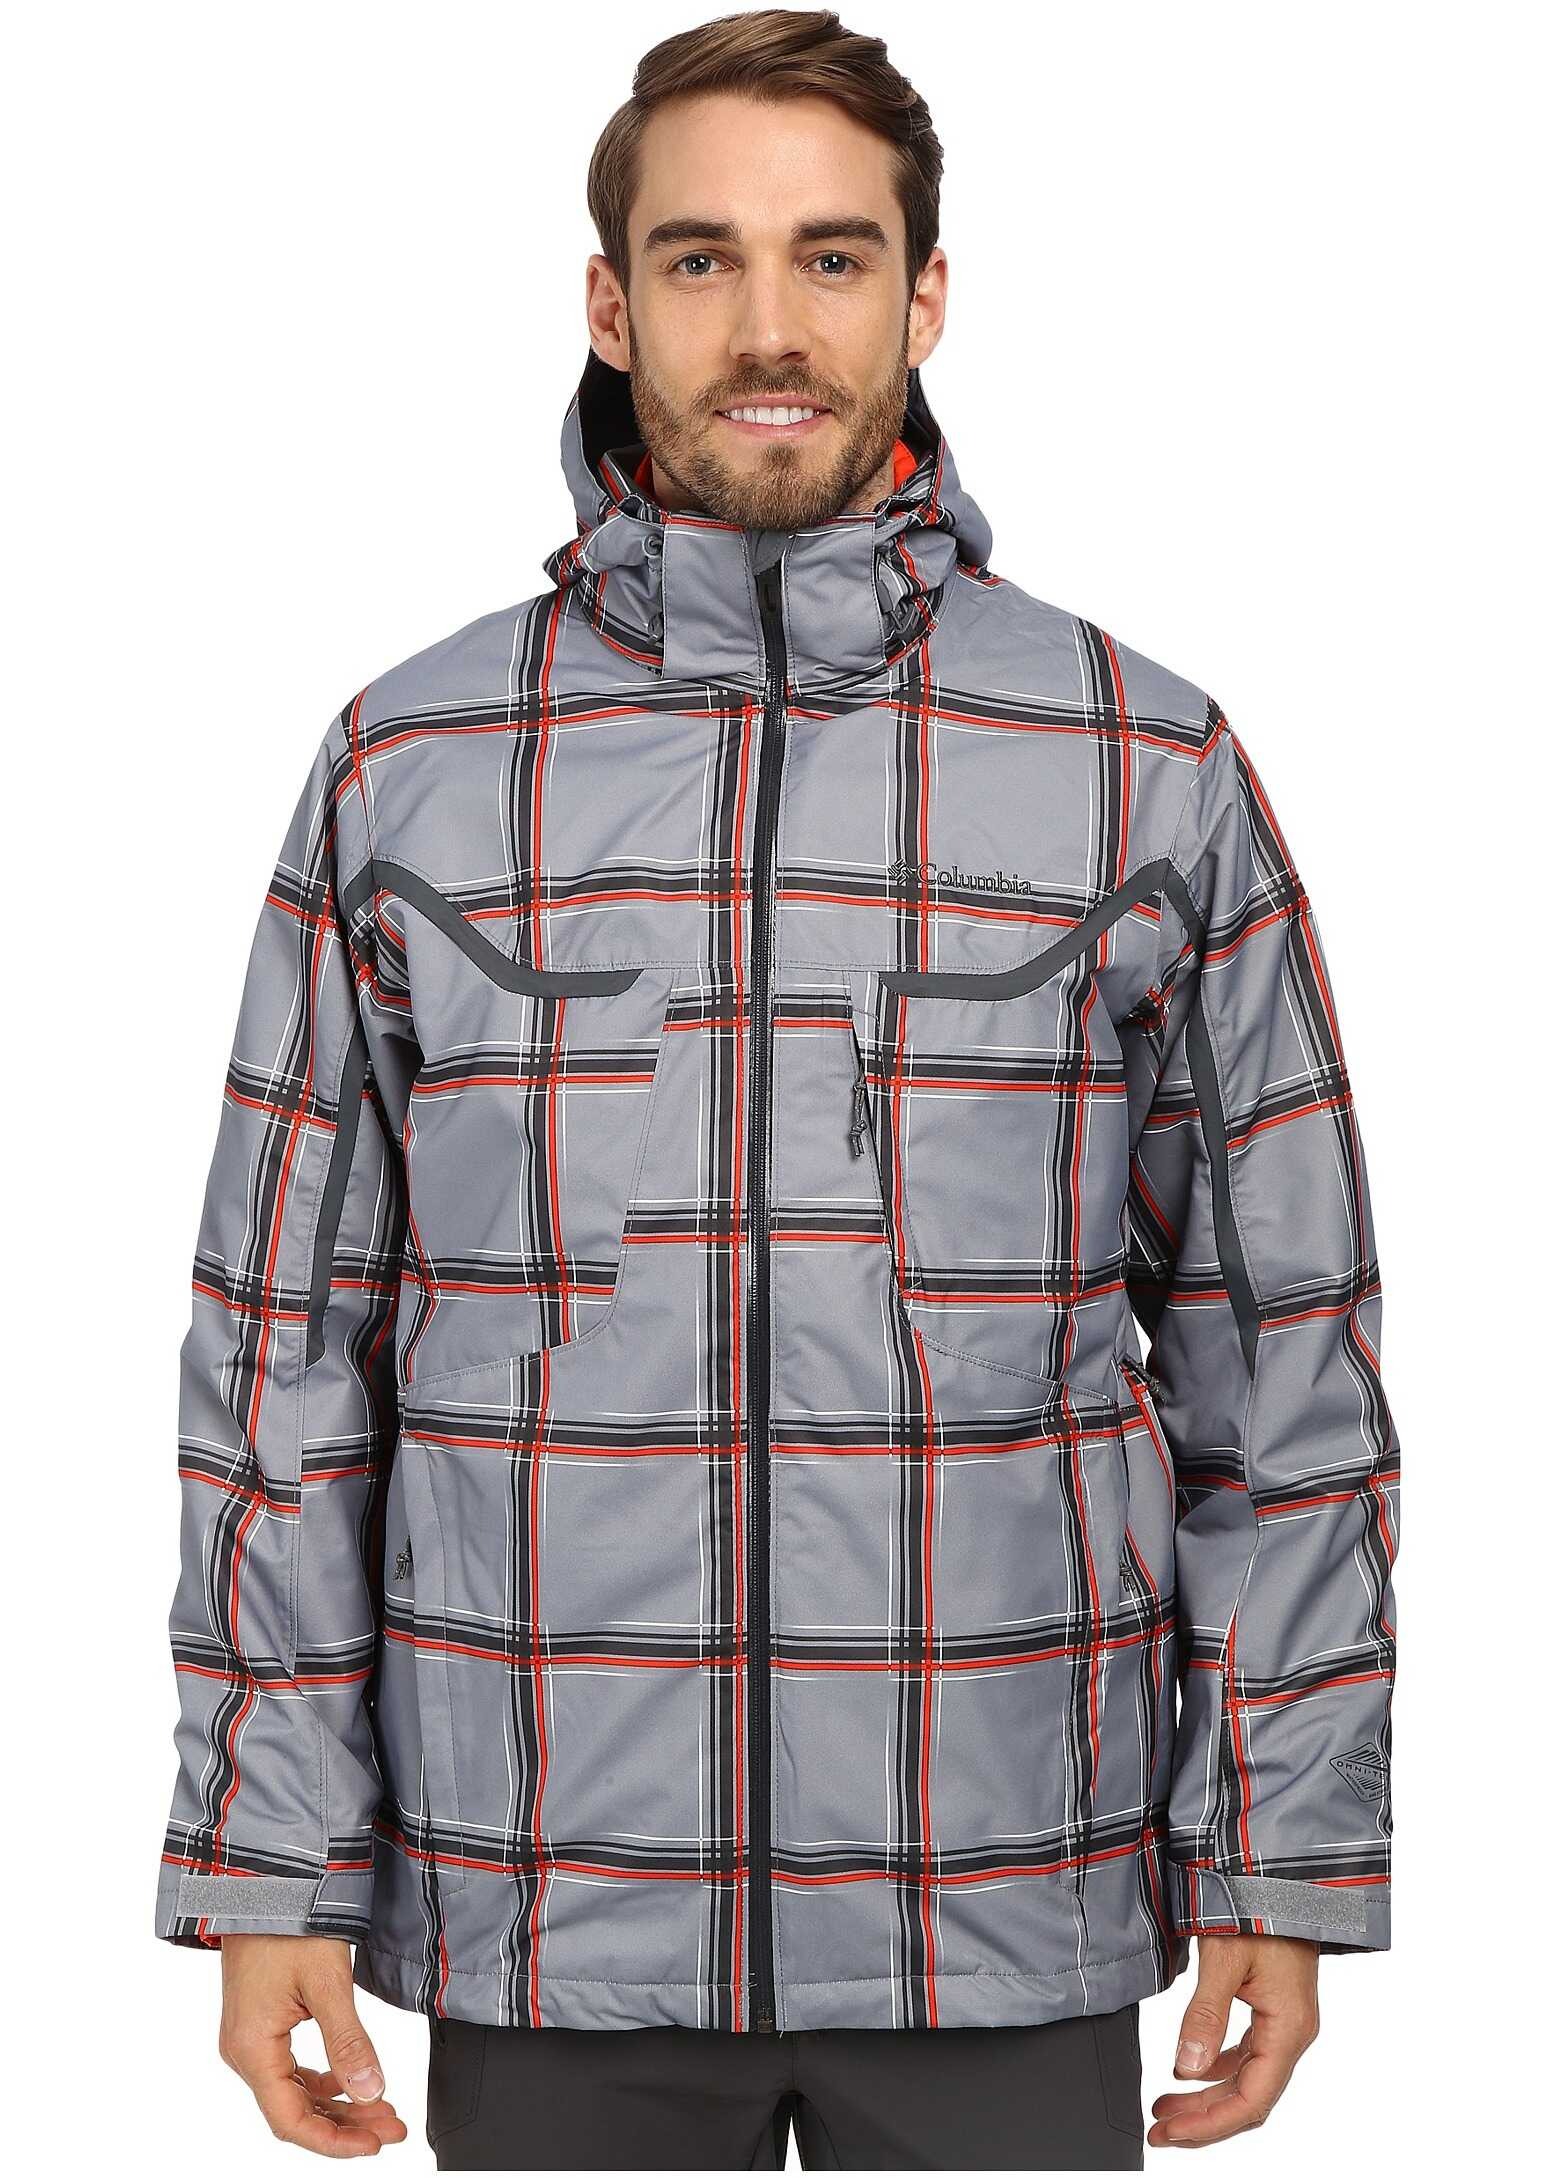 Columbia Whirlibird™ Interchange Jacket Tradewinds Grey Plaid/Graphite/State Orange